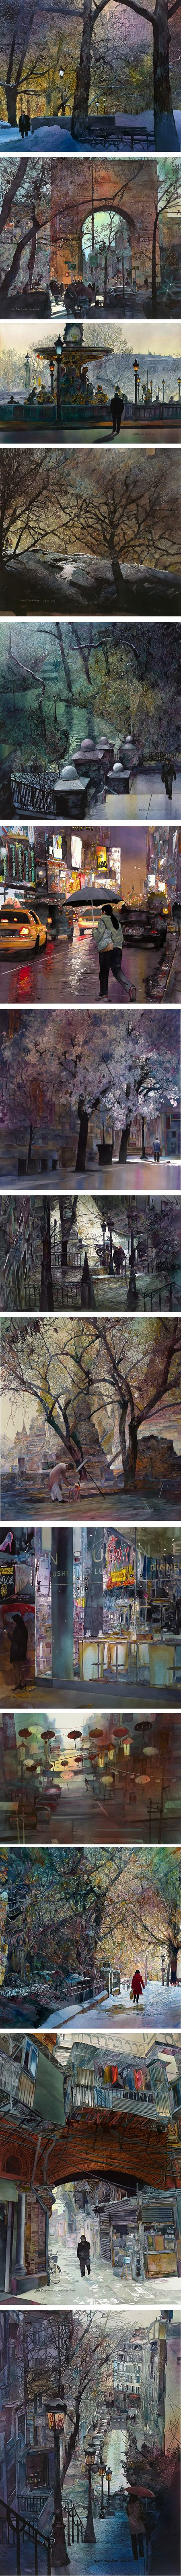 John Salminen watercolors